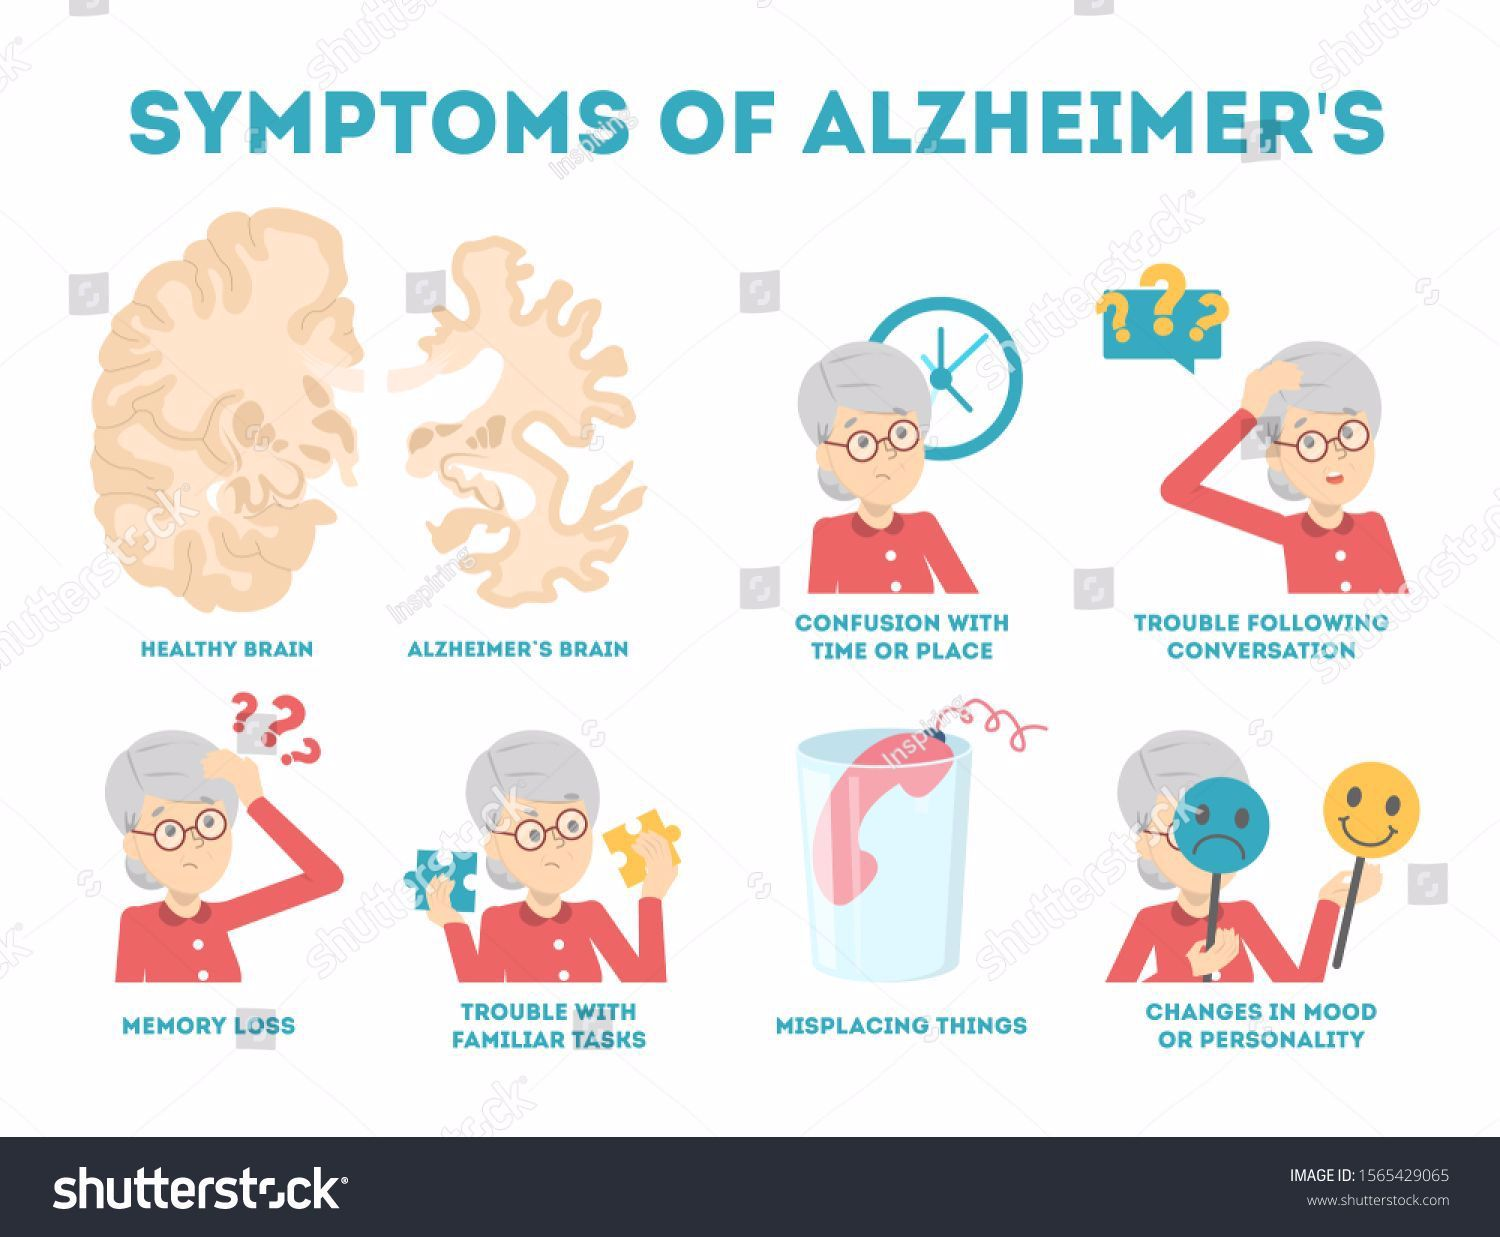 Alzheimer disease symptoms infographic Memory loss and problem with brain Mental health disorder Old people disease Isolated illustration in cartoon style